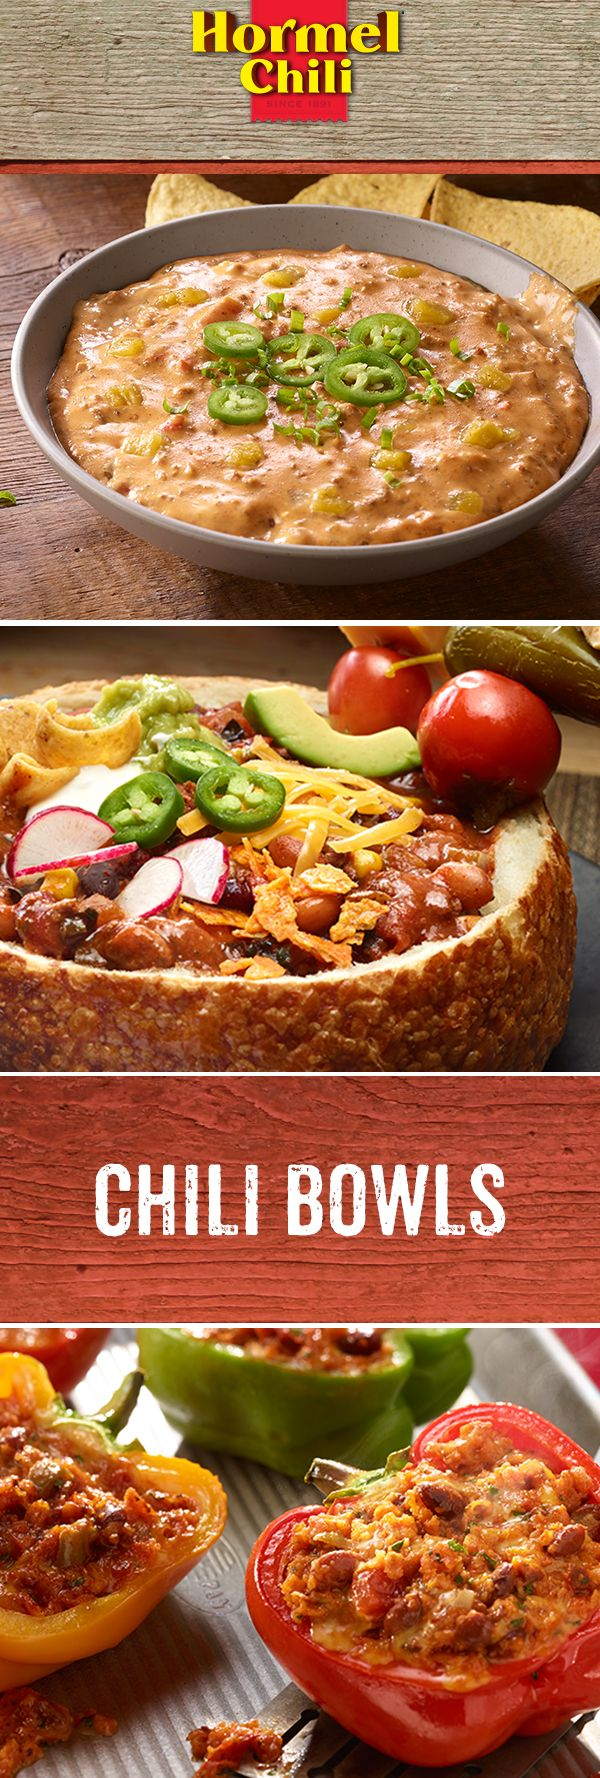 In Chili Nation, anything can be a chili bowl if you put your mind to it. But more importantly, if you put your mouth to it.  | HORMEL® Chili | Zesty Chili Cheese Dip | Chili Bowl | Chili-Stuffed Peppers | Quick and Easy Meal Idea | Winter Recipe | Leftover Chili Ideas | Quick Weeknight Dinner | Game Day Recipes | Quick Party Recipe | Football Party Meal |